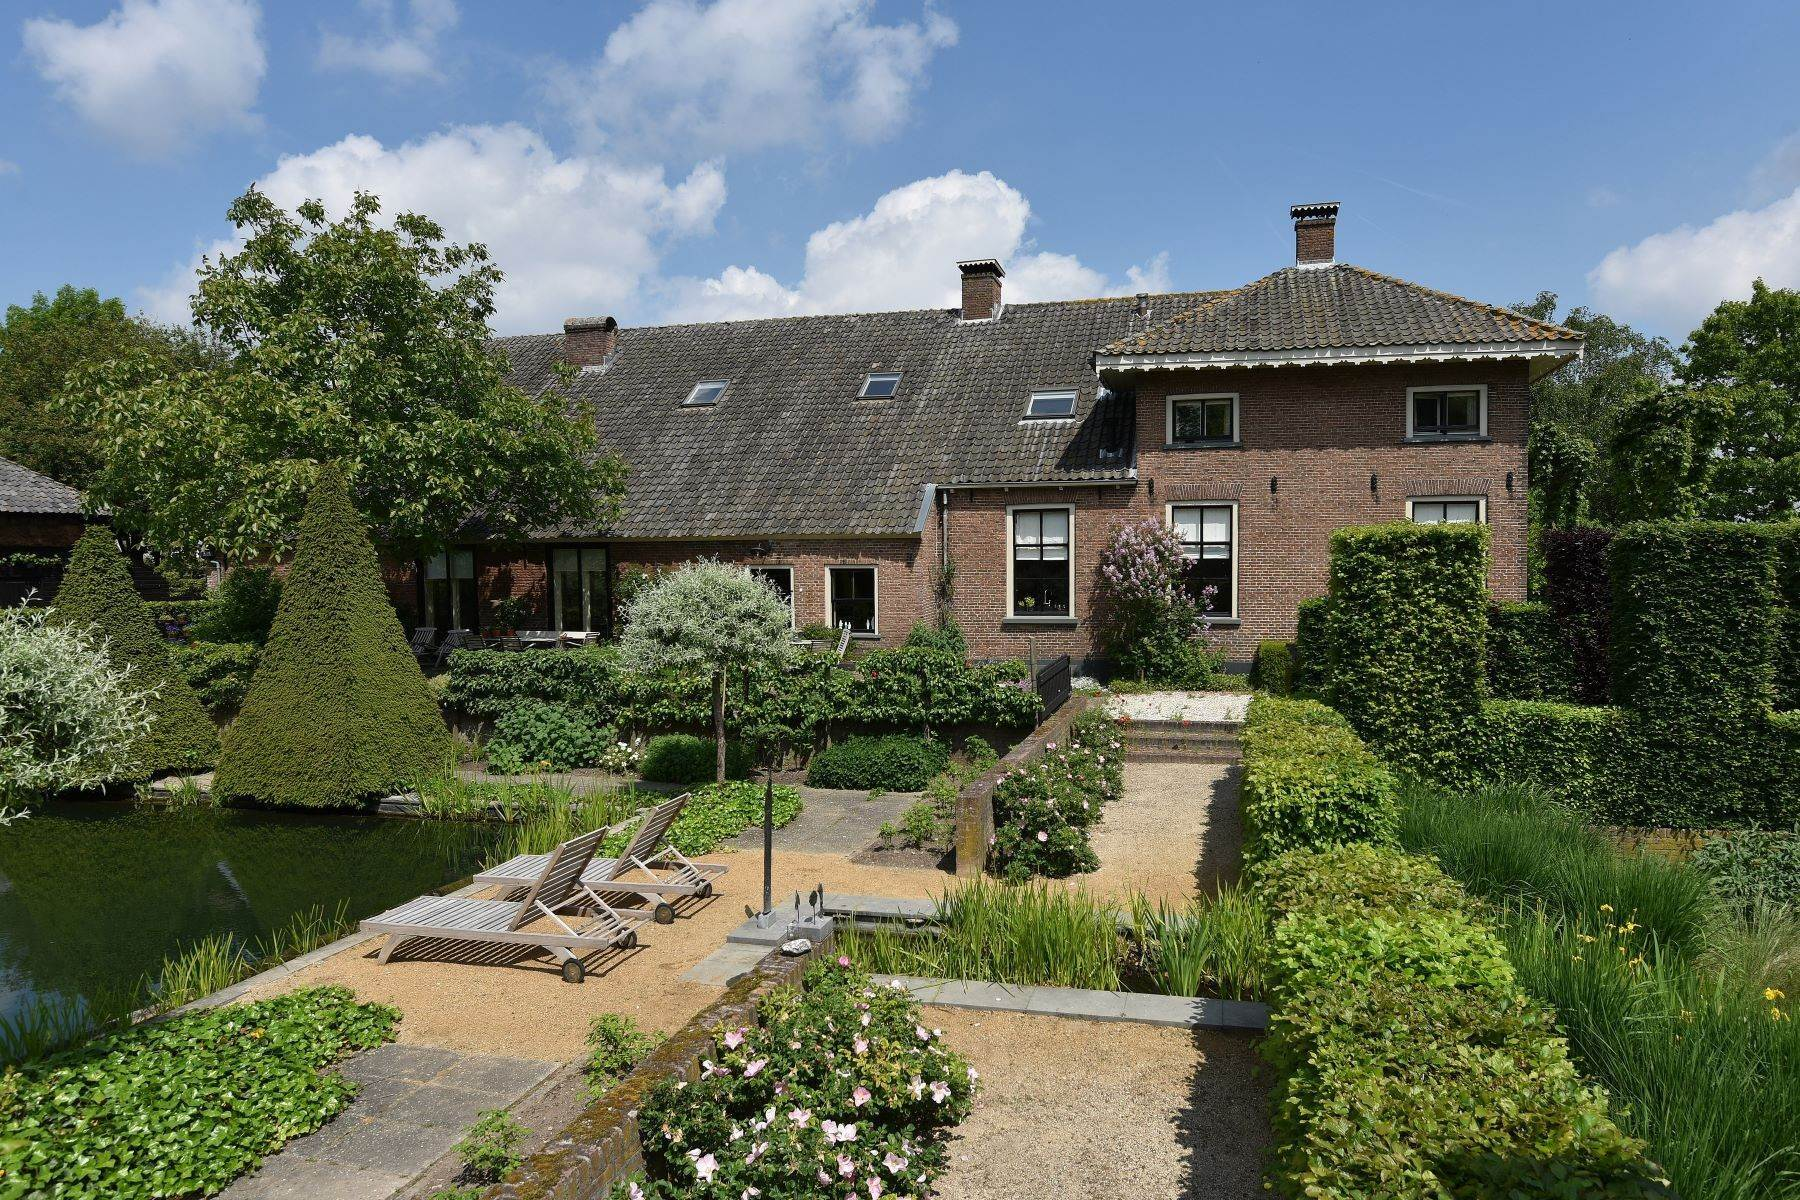 Single Family Homes for Sale at FARMHOUSE BUITENLUST Achterstraat 11 Asch, Gelderland 4115 RP Netherlands